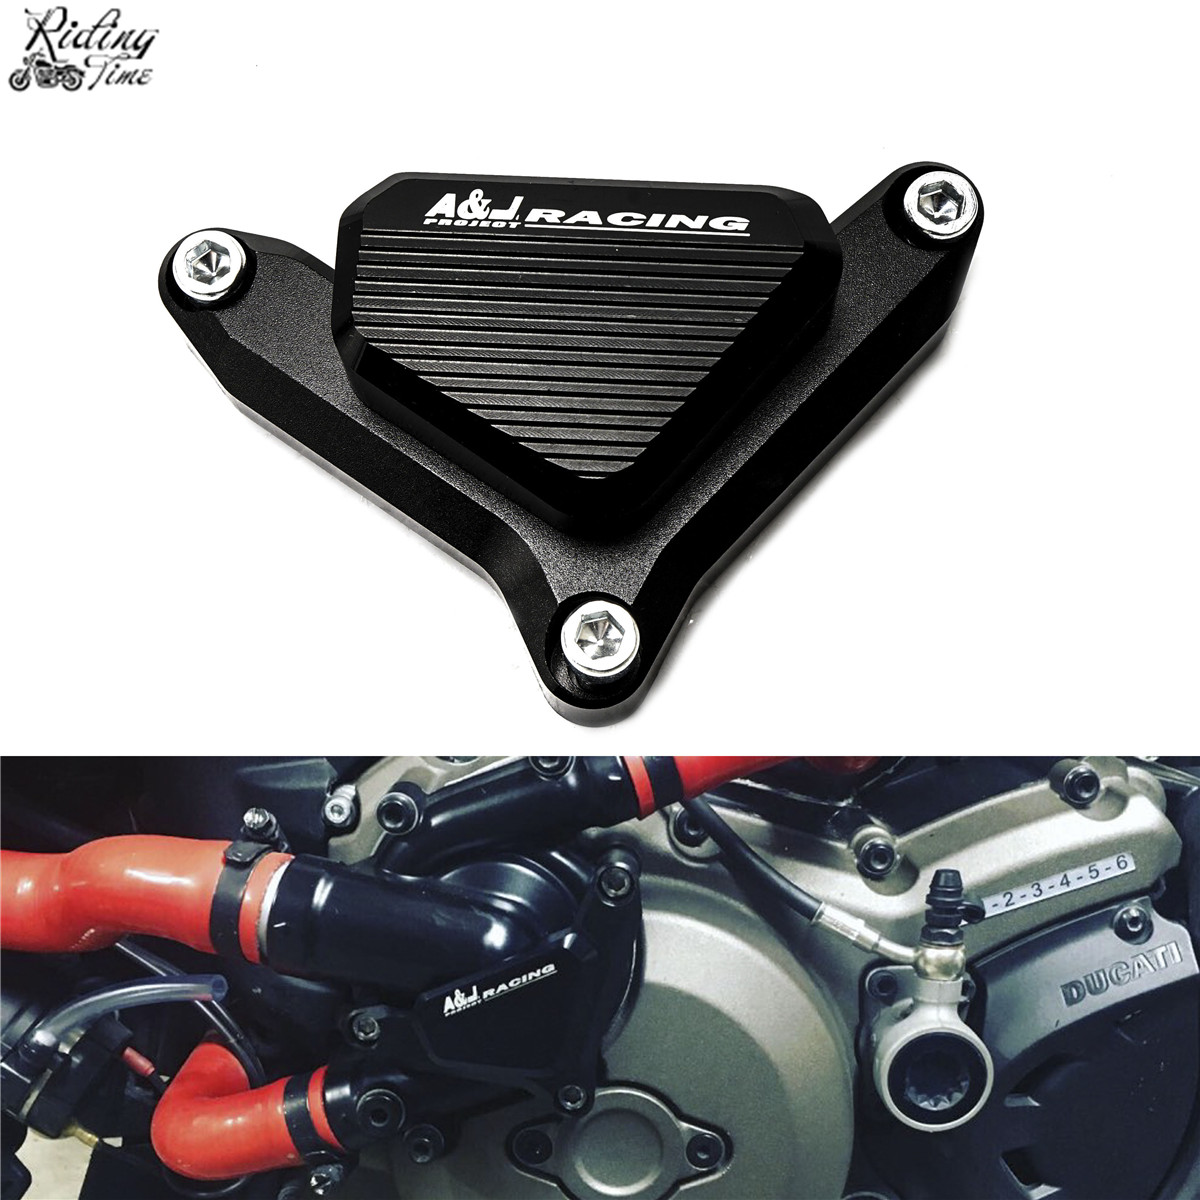 Motorcycle Water Pump Protector Slider Guard Cover For Ducati Monster 821 Monster 1200 Monster 1200S Hypermotard 939